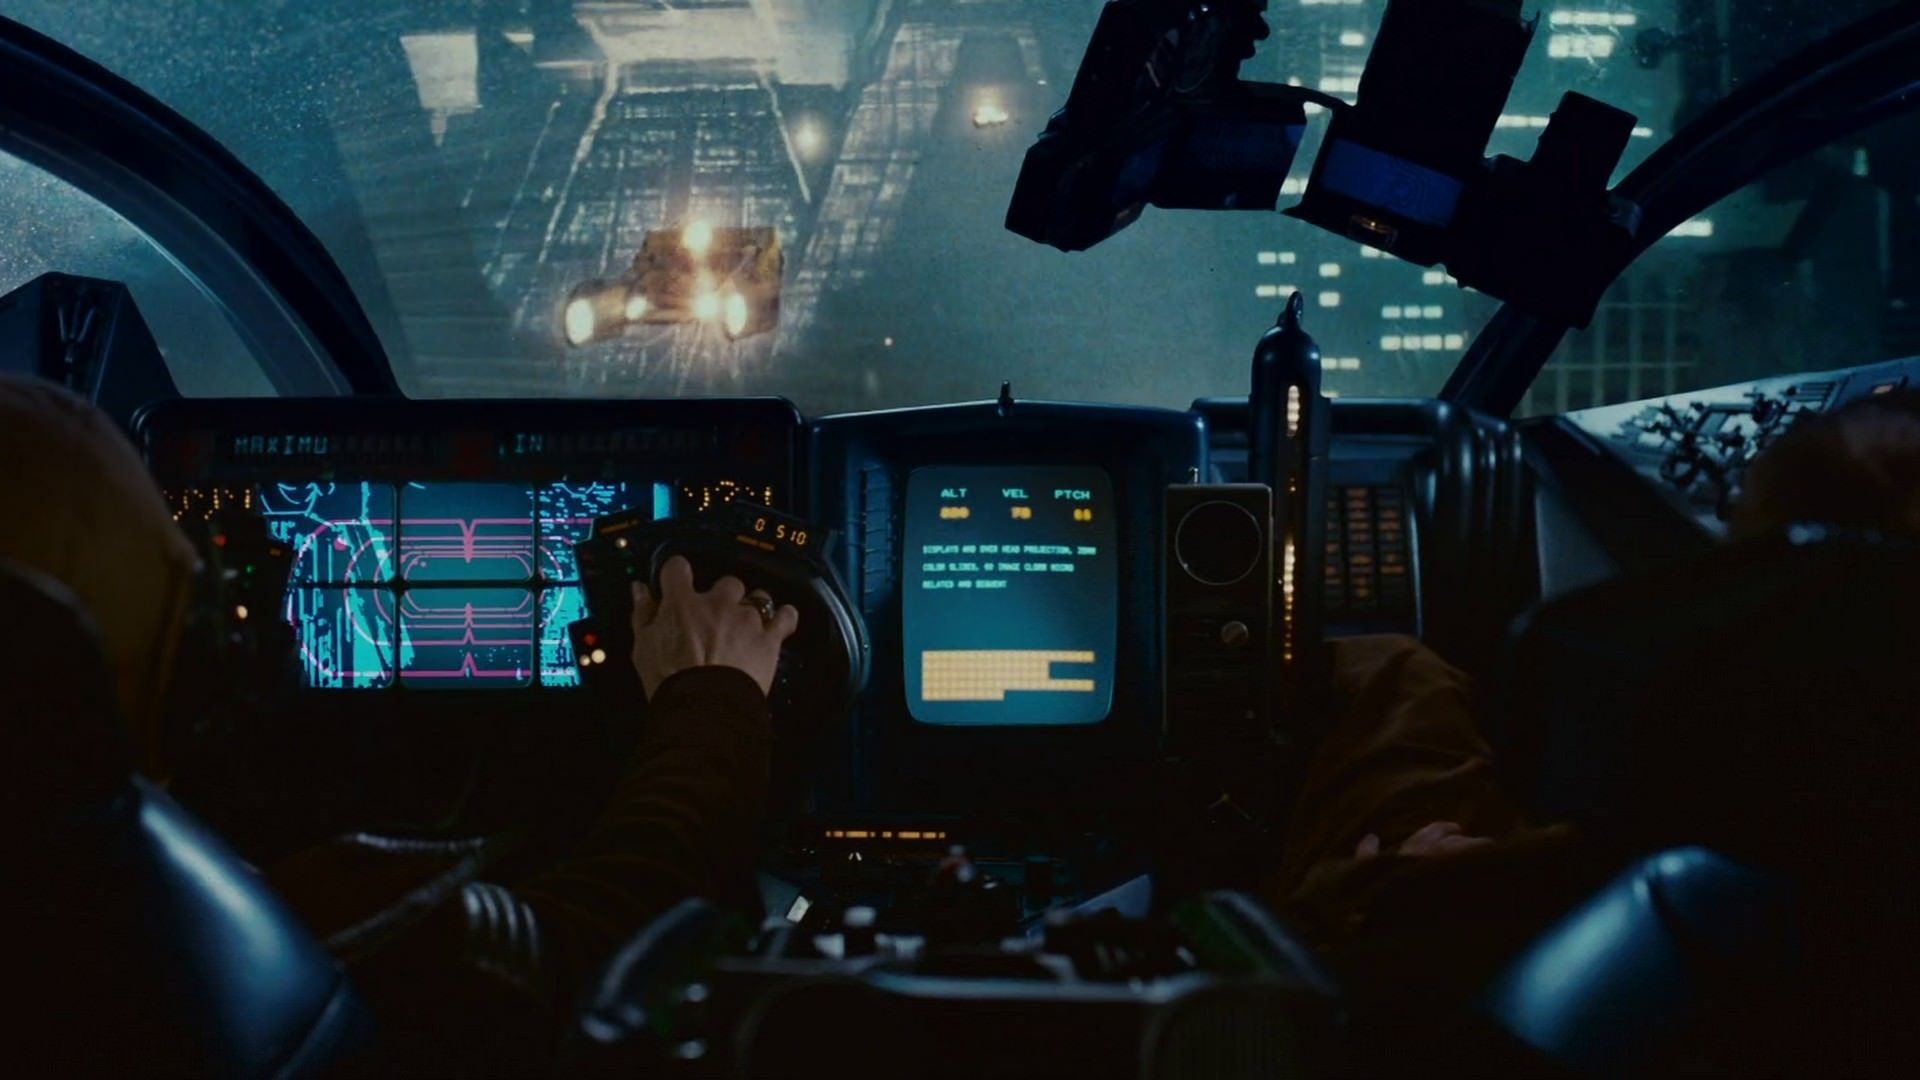 Res: 1920x1080, Blade Runner Cockpit [] Link :  https://toptenbeautifulwallpaper.blogspot.com - Top ten Beautiufl wallpaper